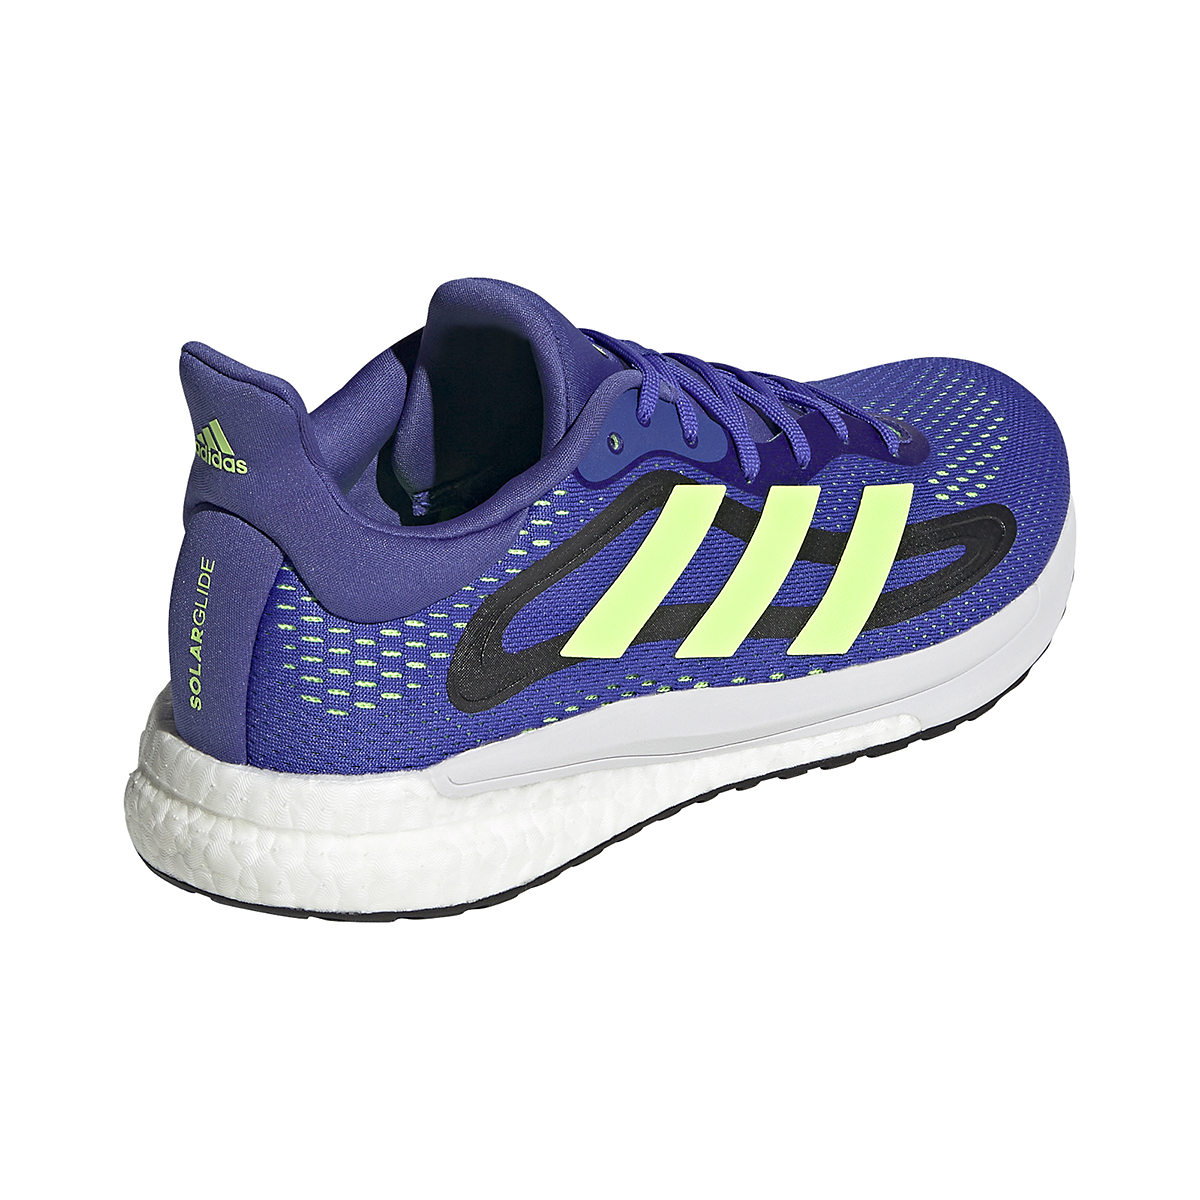 Men's Adidas SolarGlide 4 Running Shoe - Color: Sonic Ink/Signal Green/Core Black - Size: 6.5 - Width: Regular, Sonic Ink/Signal Green/Core Black, large, image 5